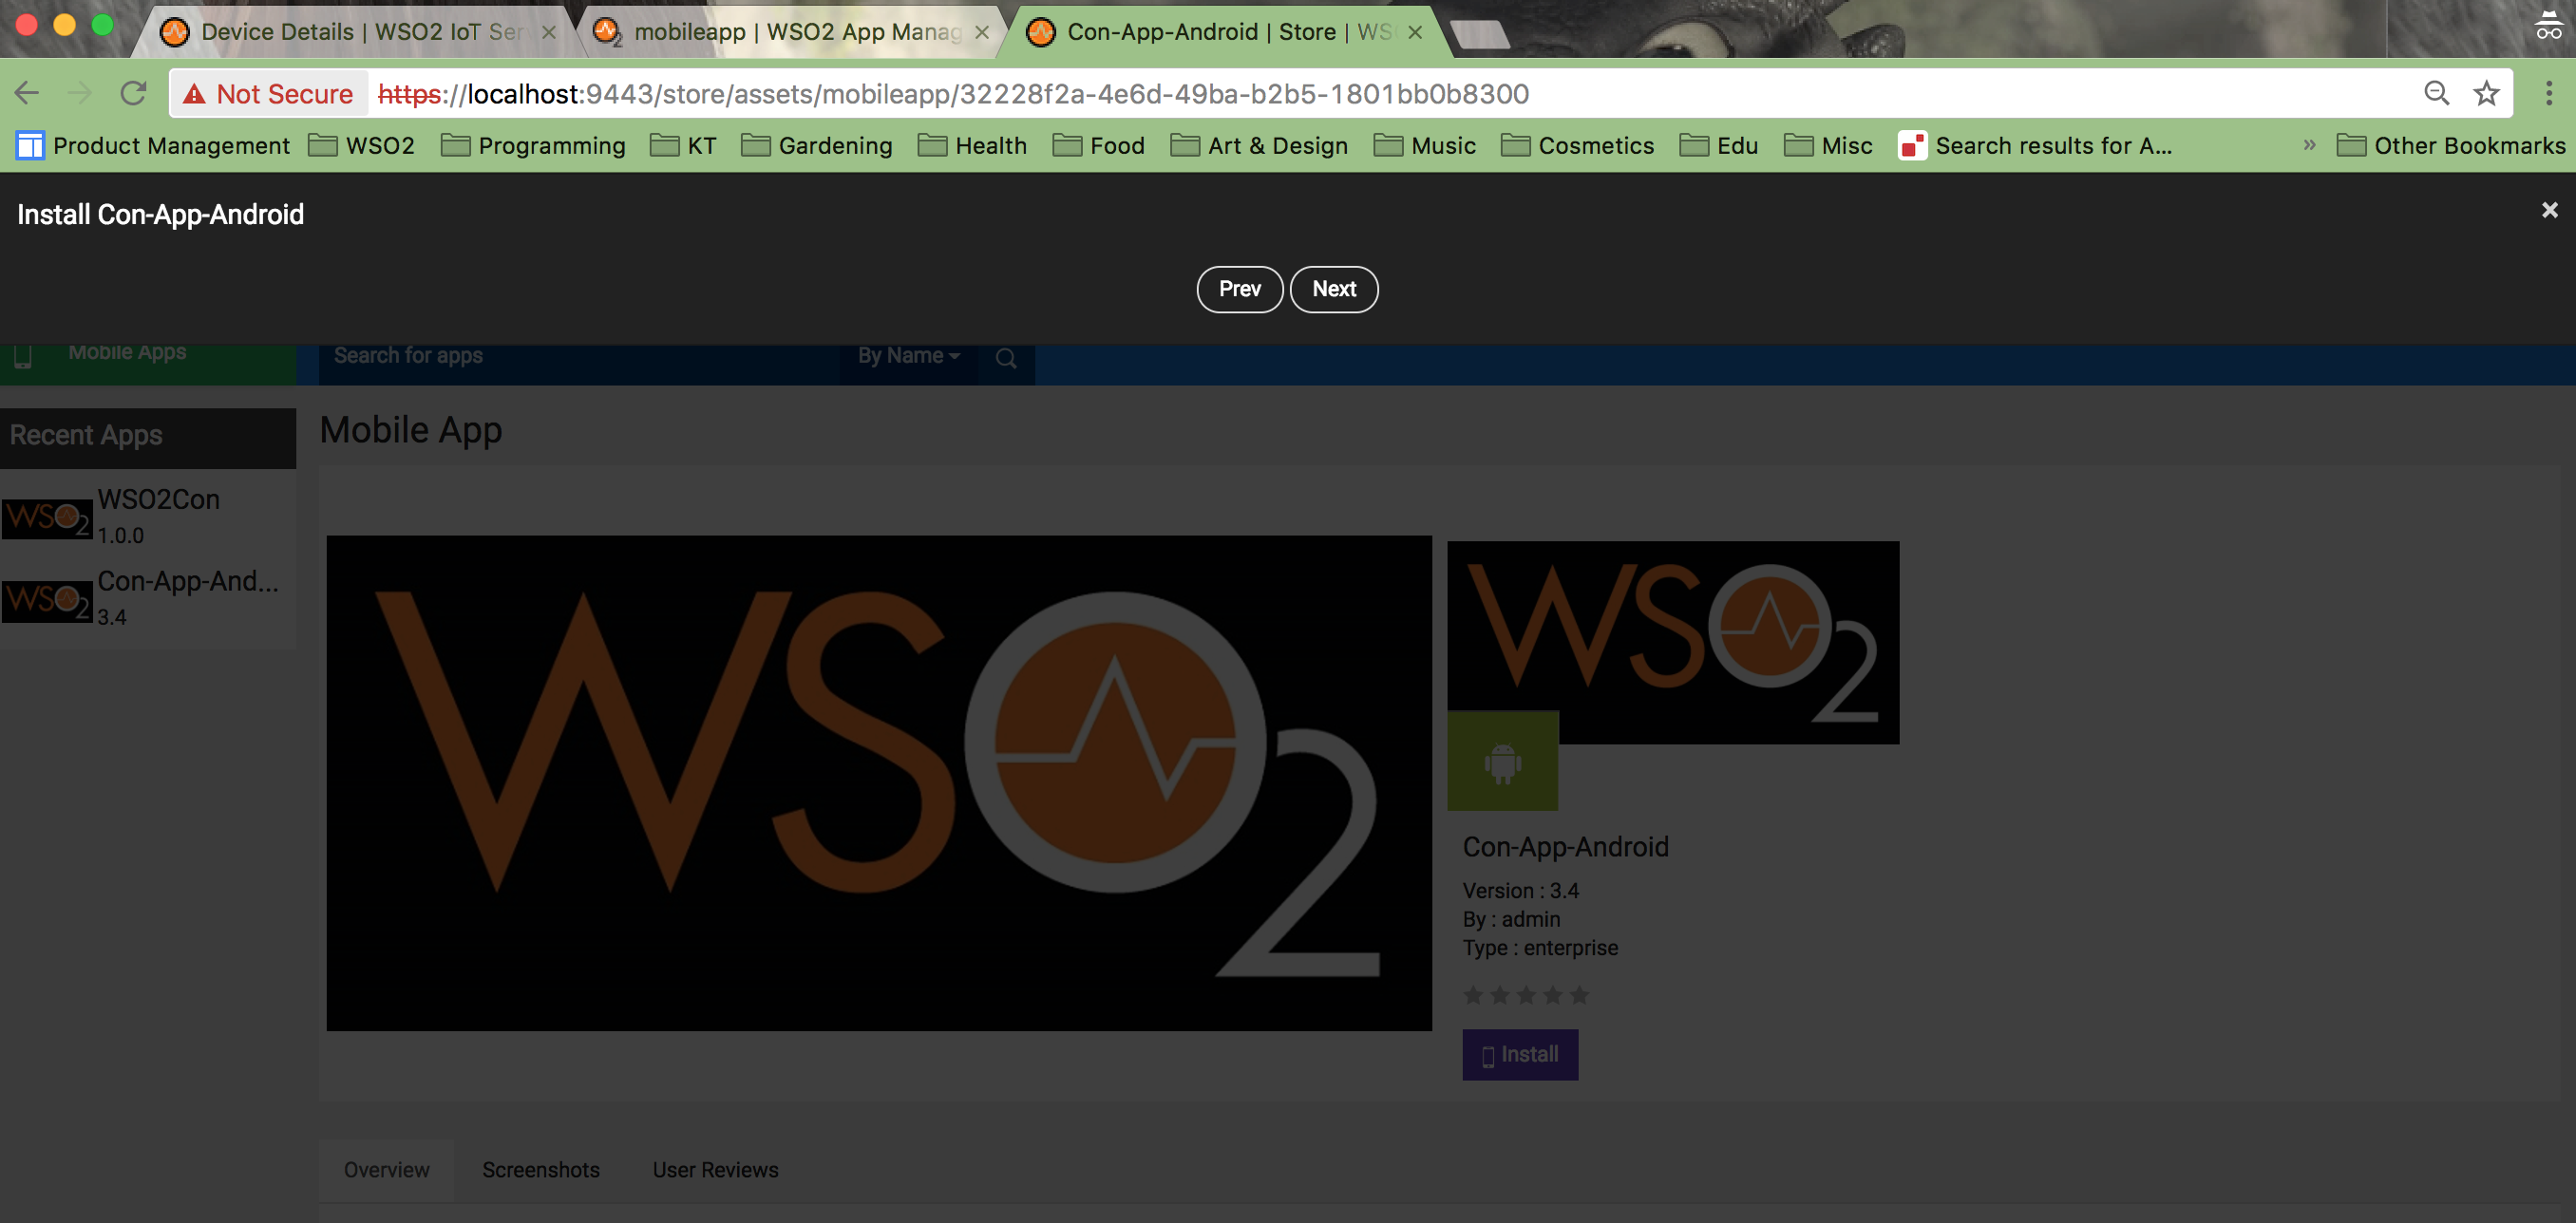 Android App installation cannot be completed · Issue #1222 · wso2